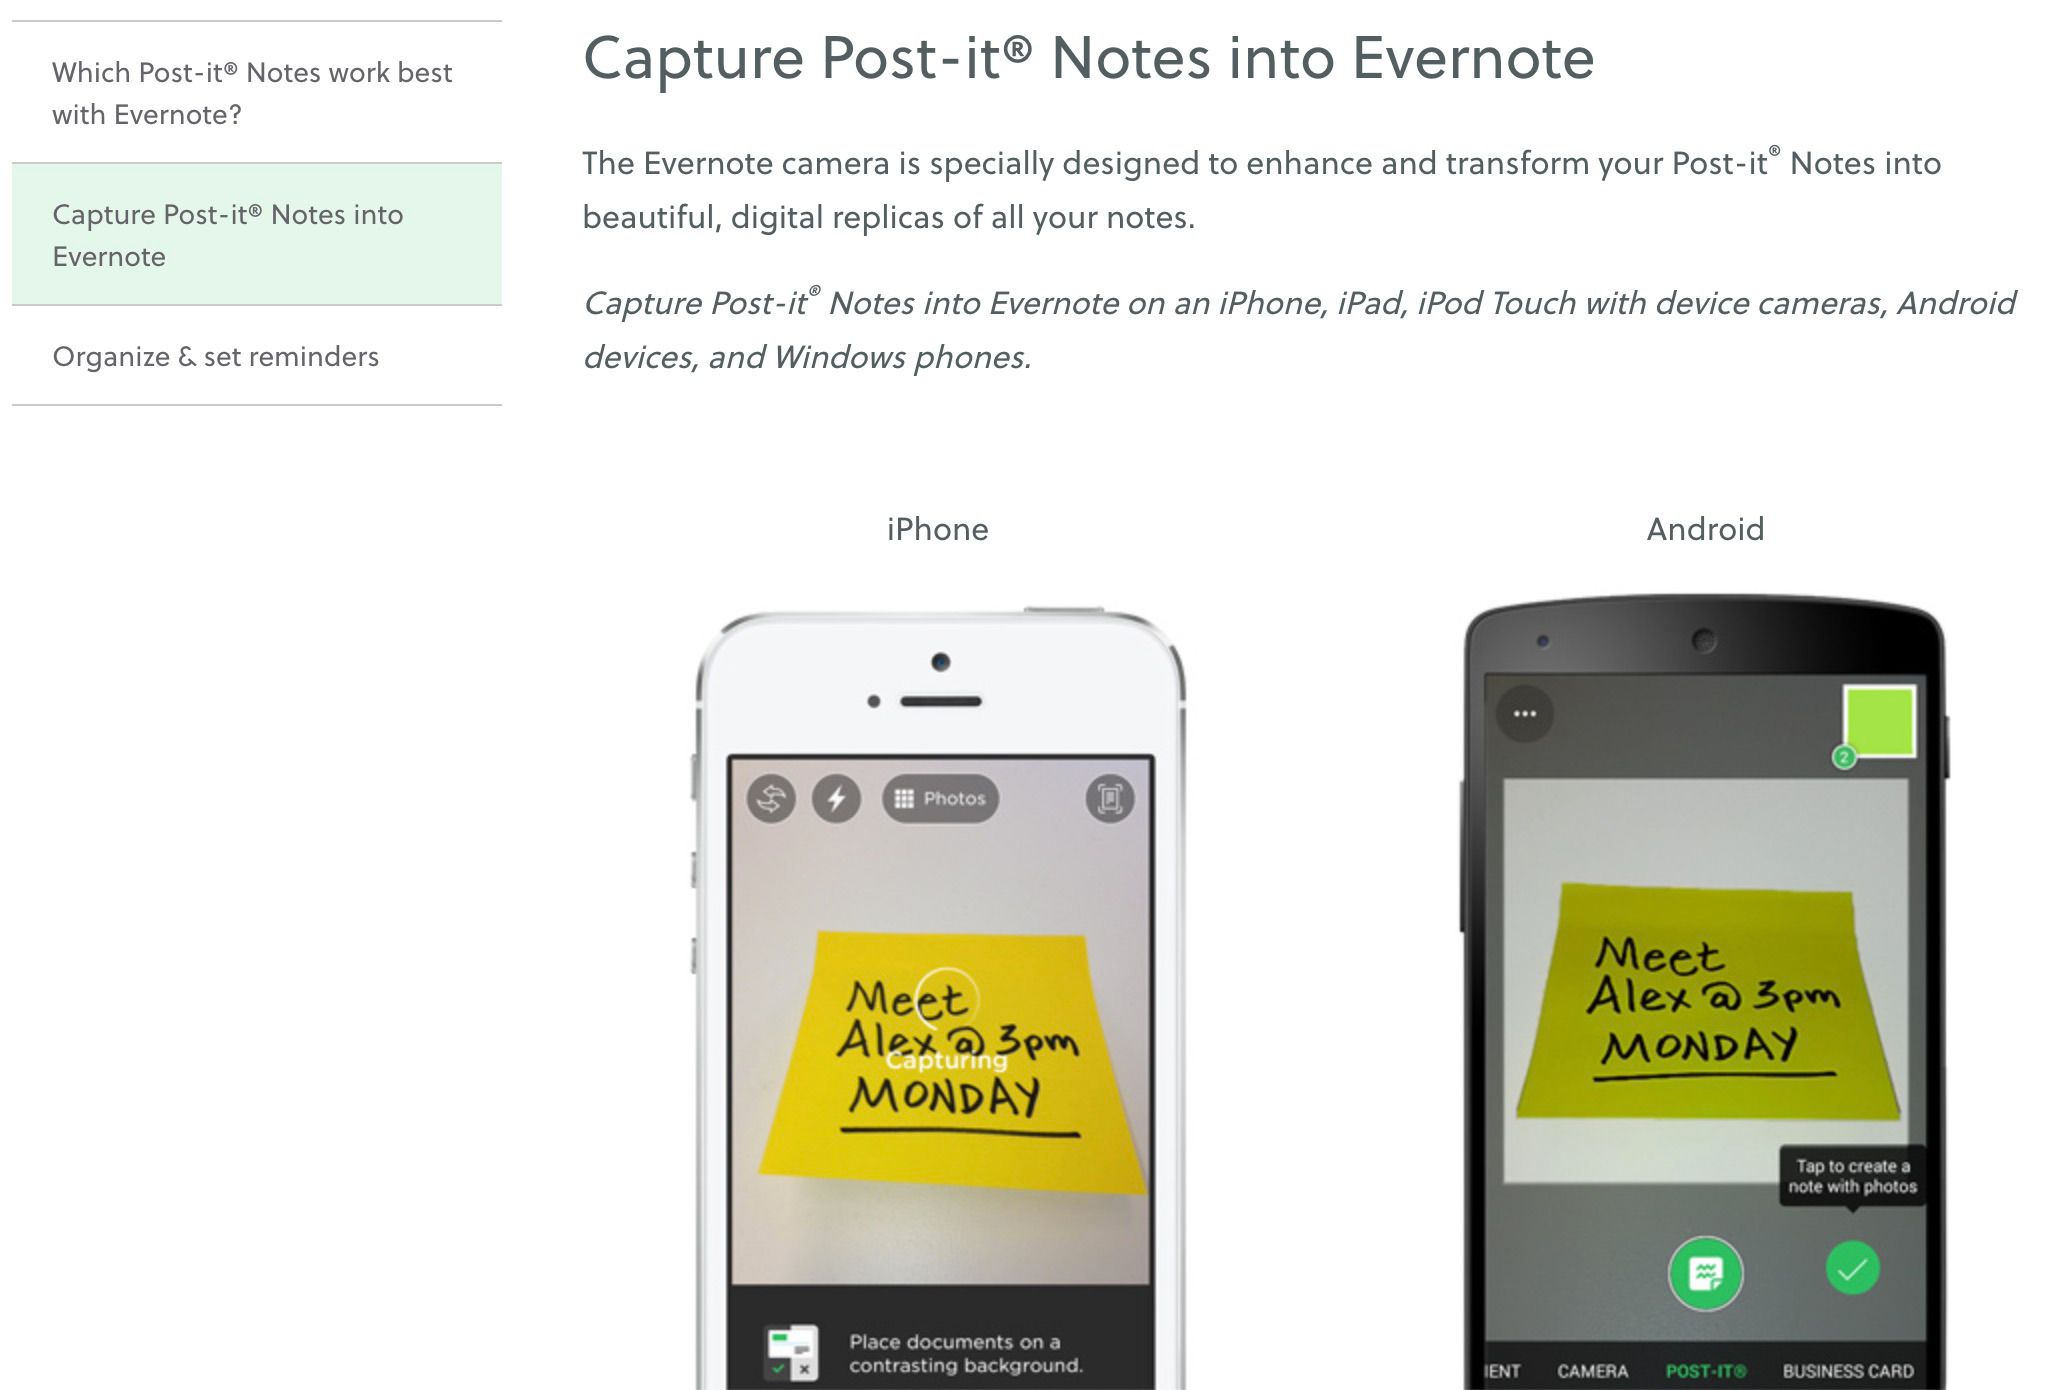 Post-Its and Evernote